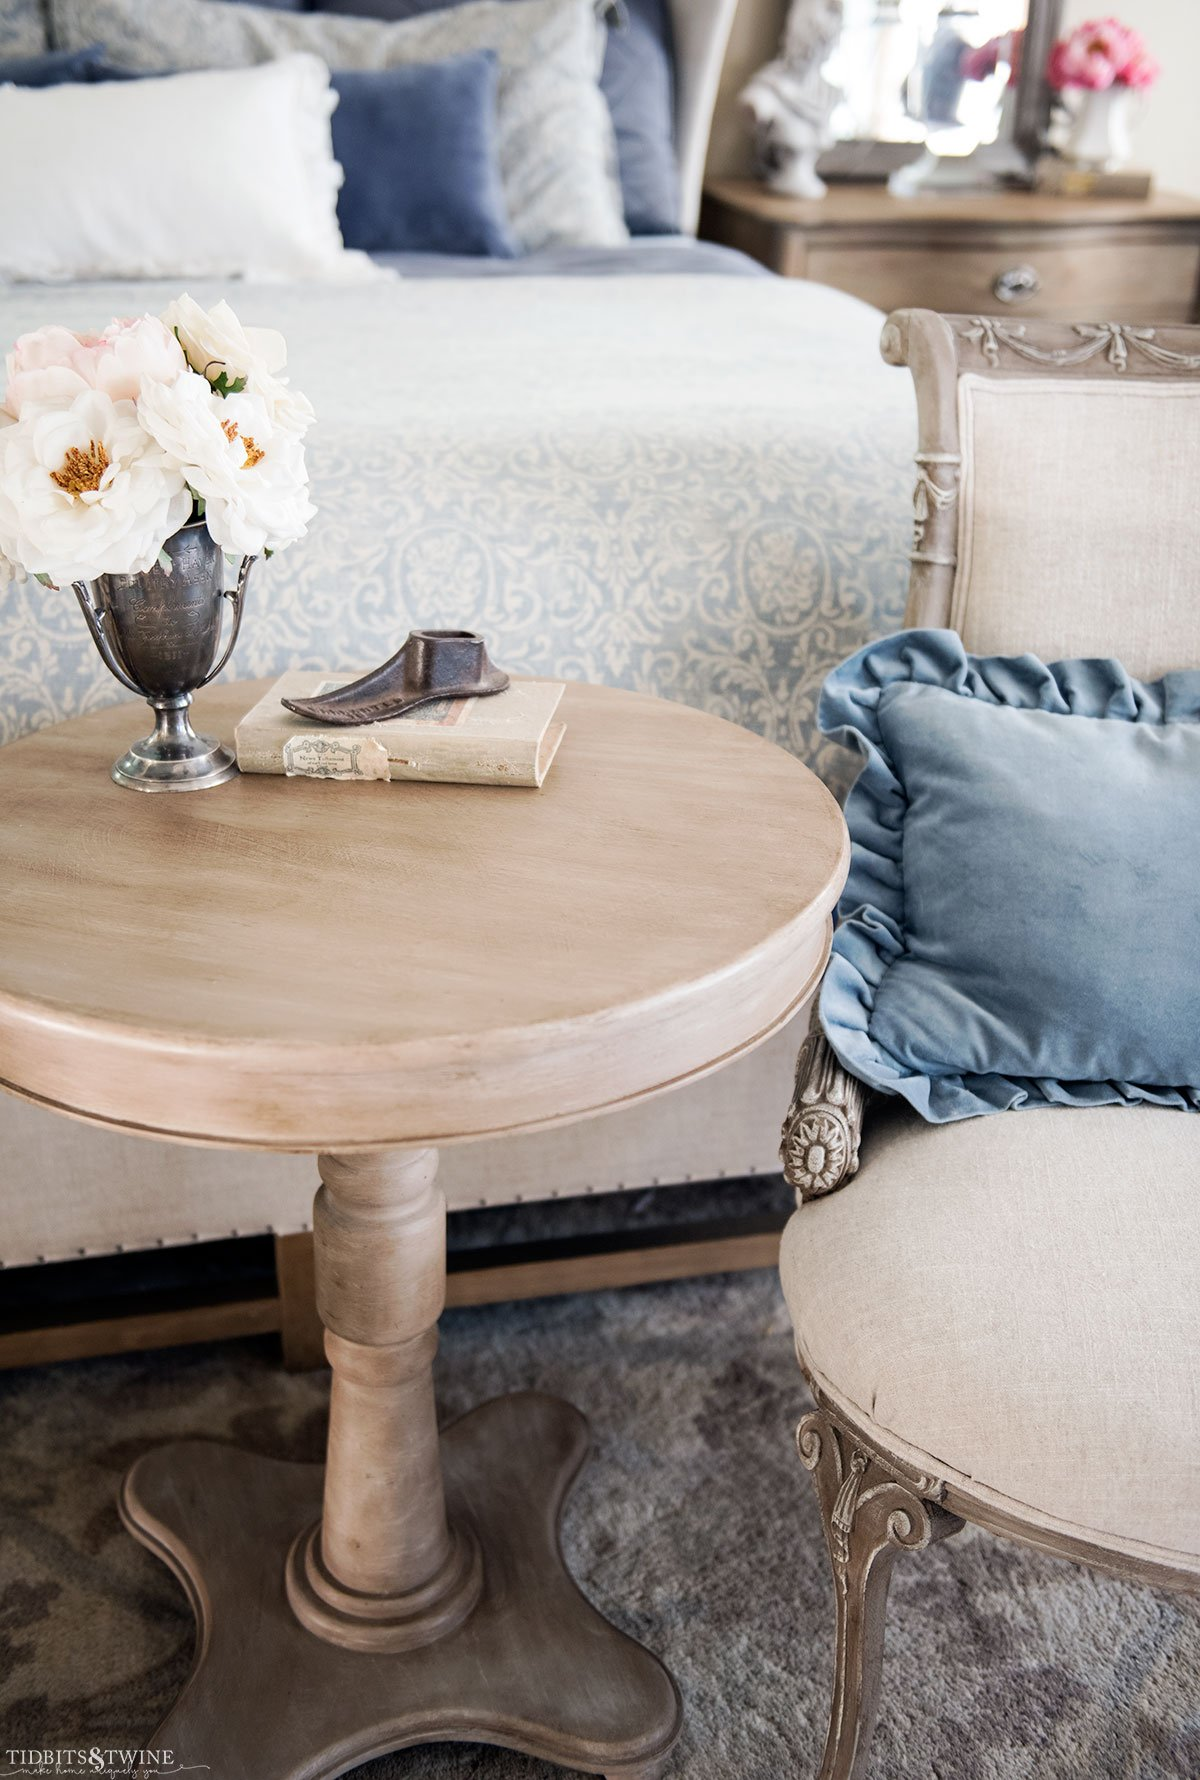 DIY faux wood table and french chairs at end of bed with blue ruffle pillow